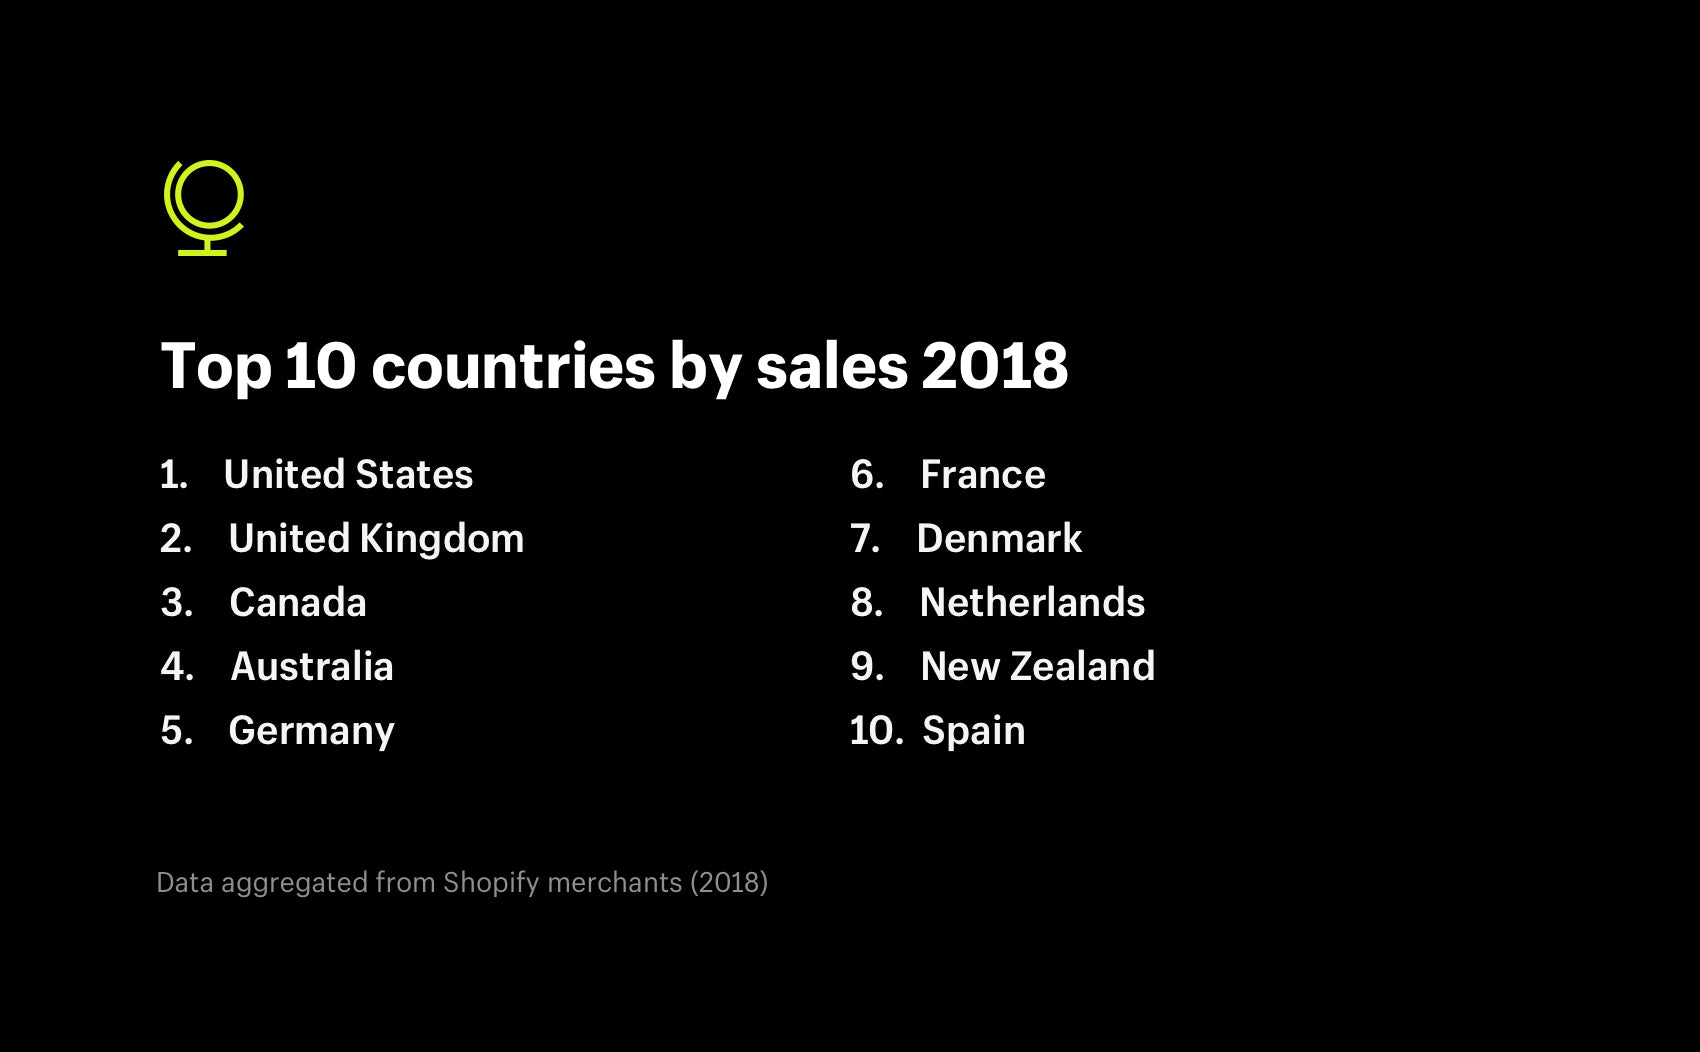 Top 10 countries by sales 2018